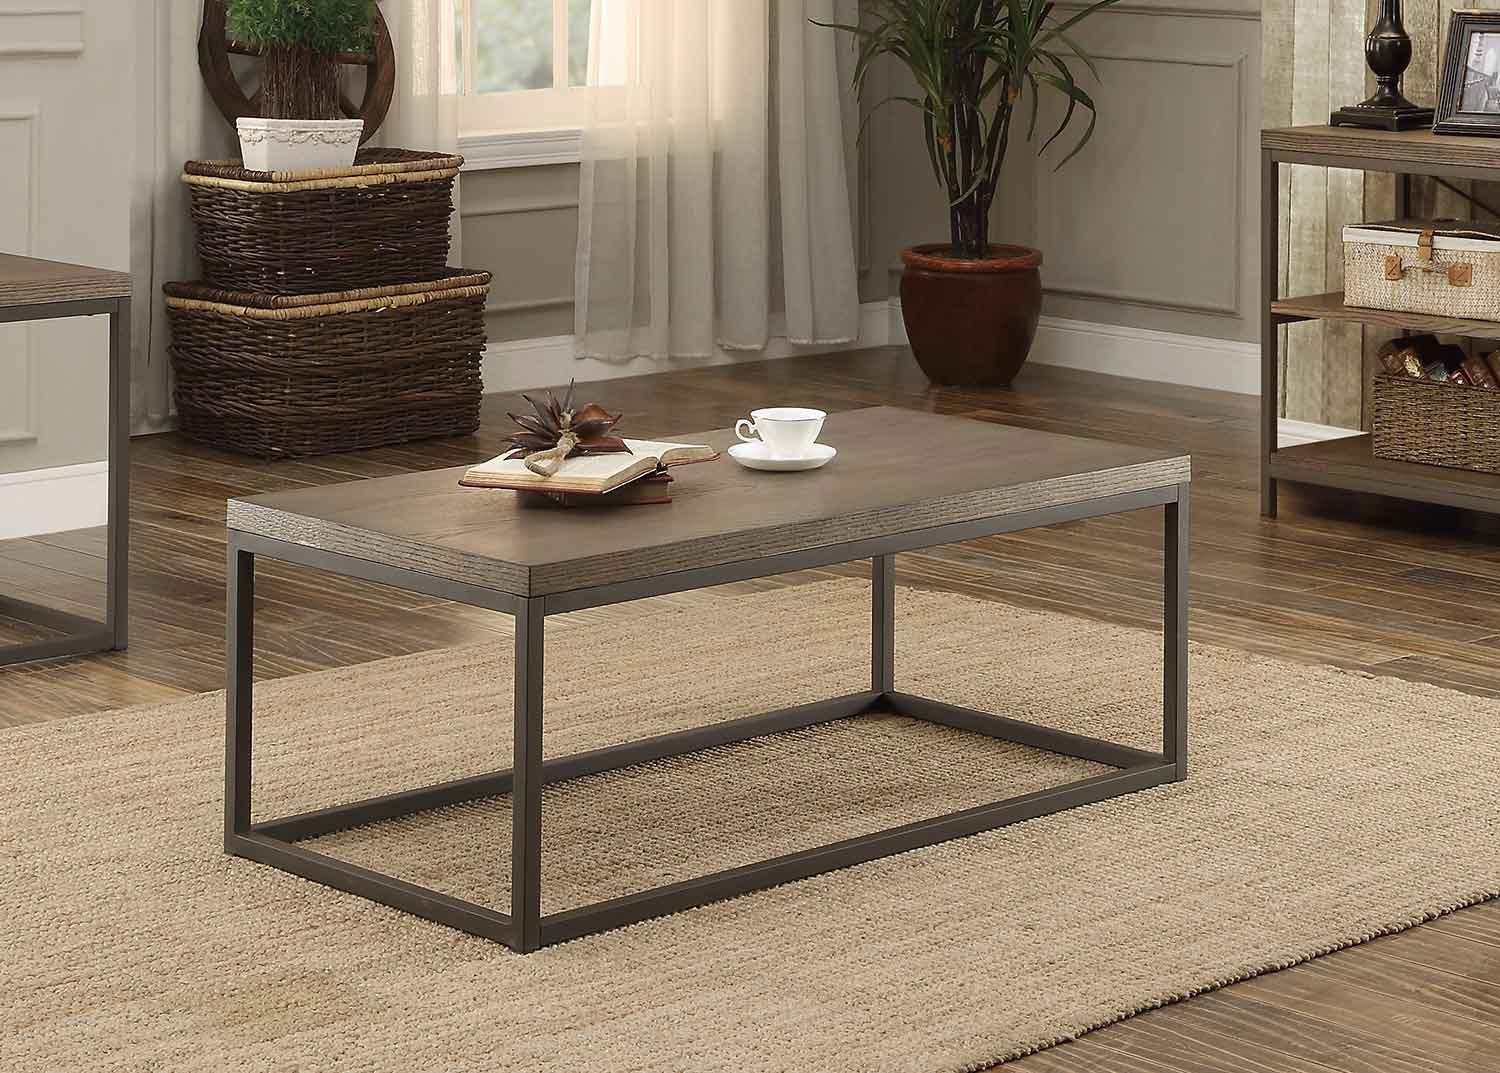 Homelegance Daria Cocktail/Coffee Table - Weathered Wood Table Top with Metal Framing